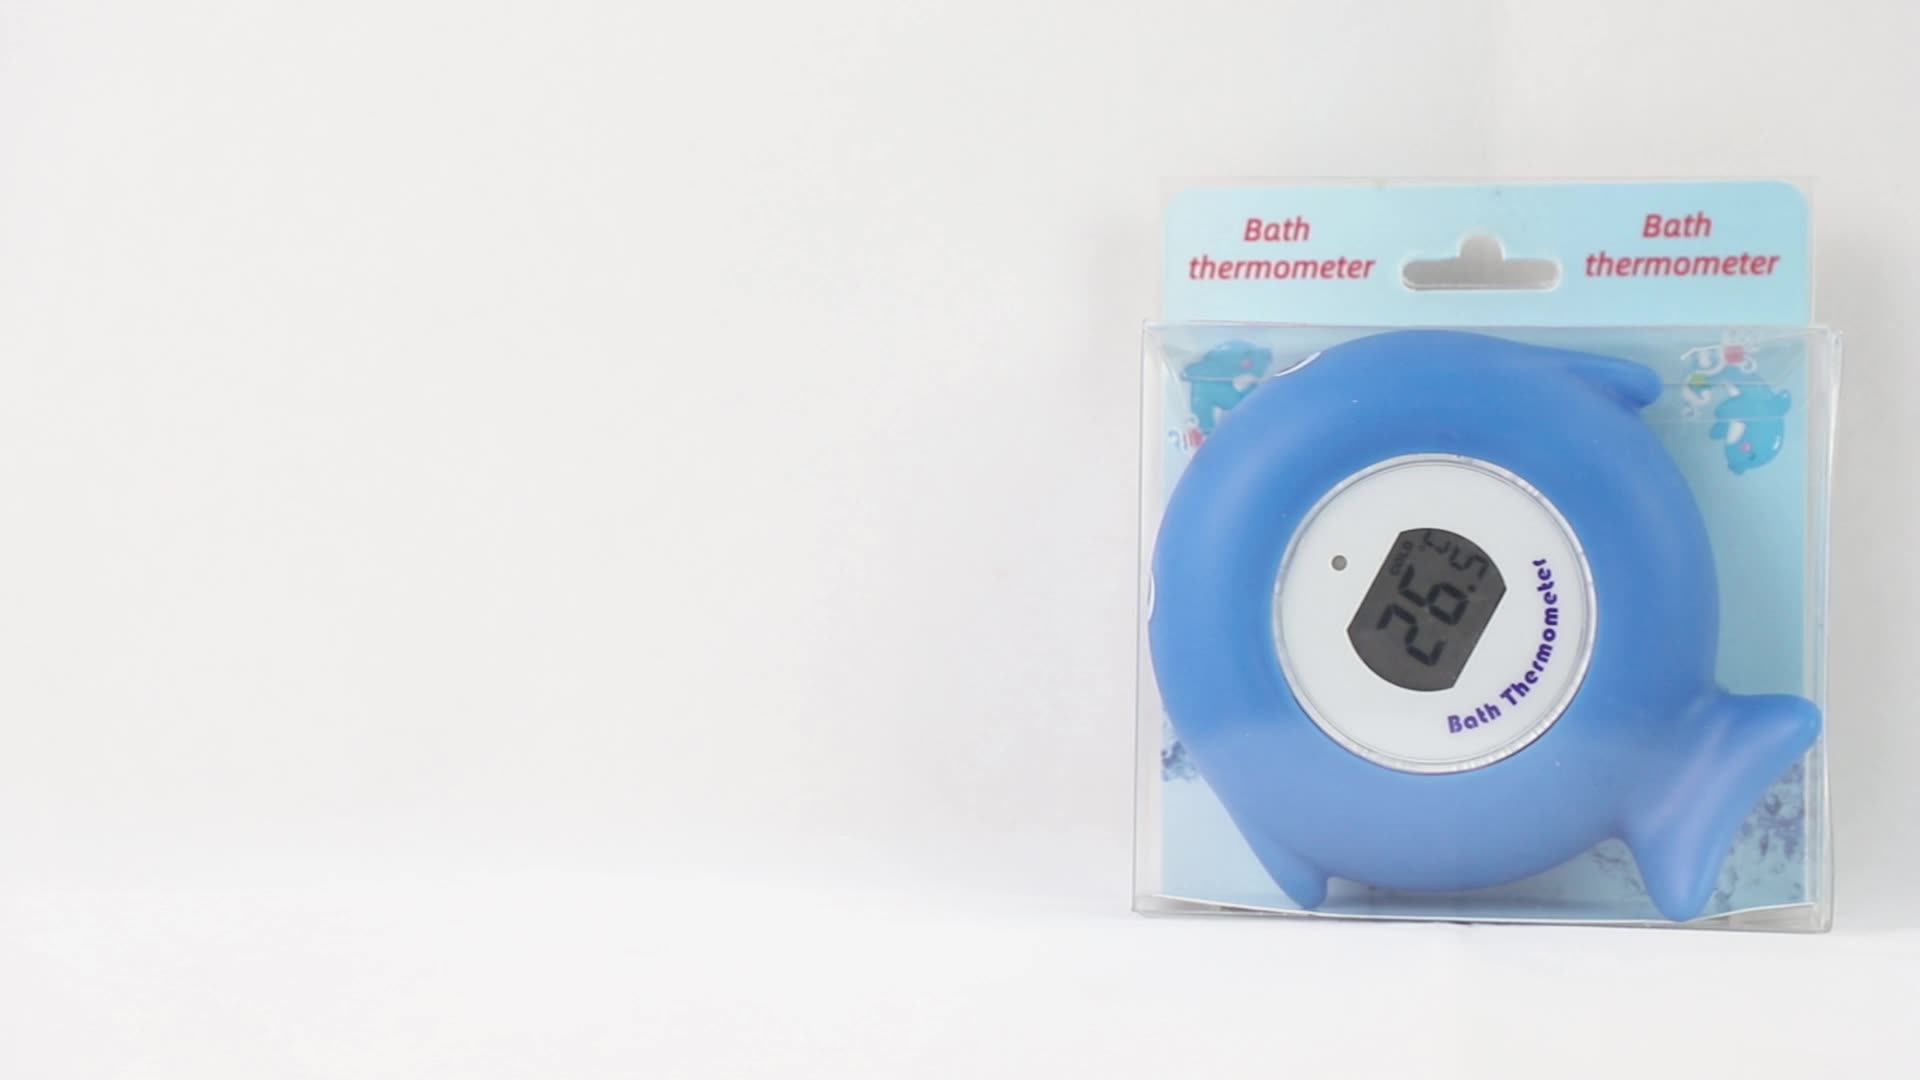 Baby Bath Water Thermometer Harmless Health  Cute Fish Appearance Environmental Protection Material